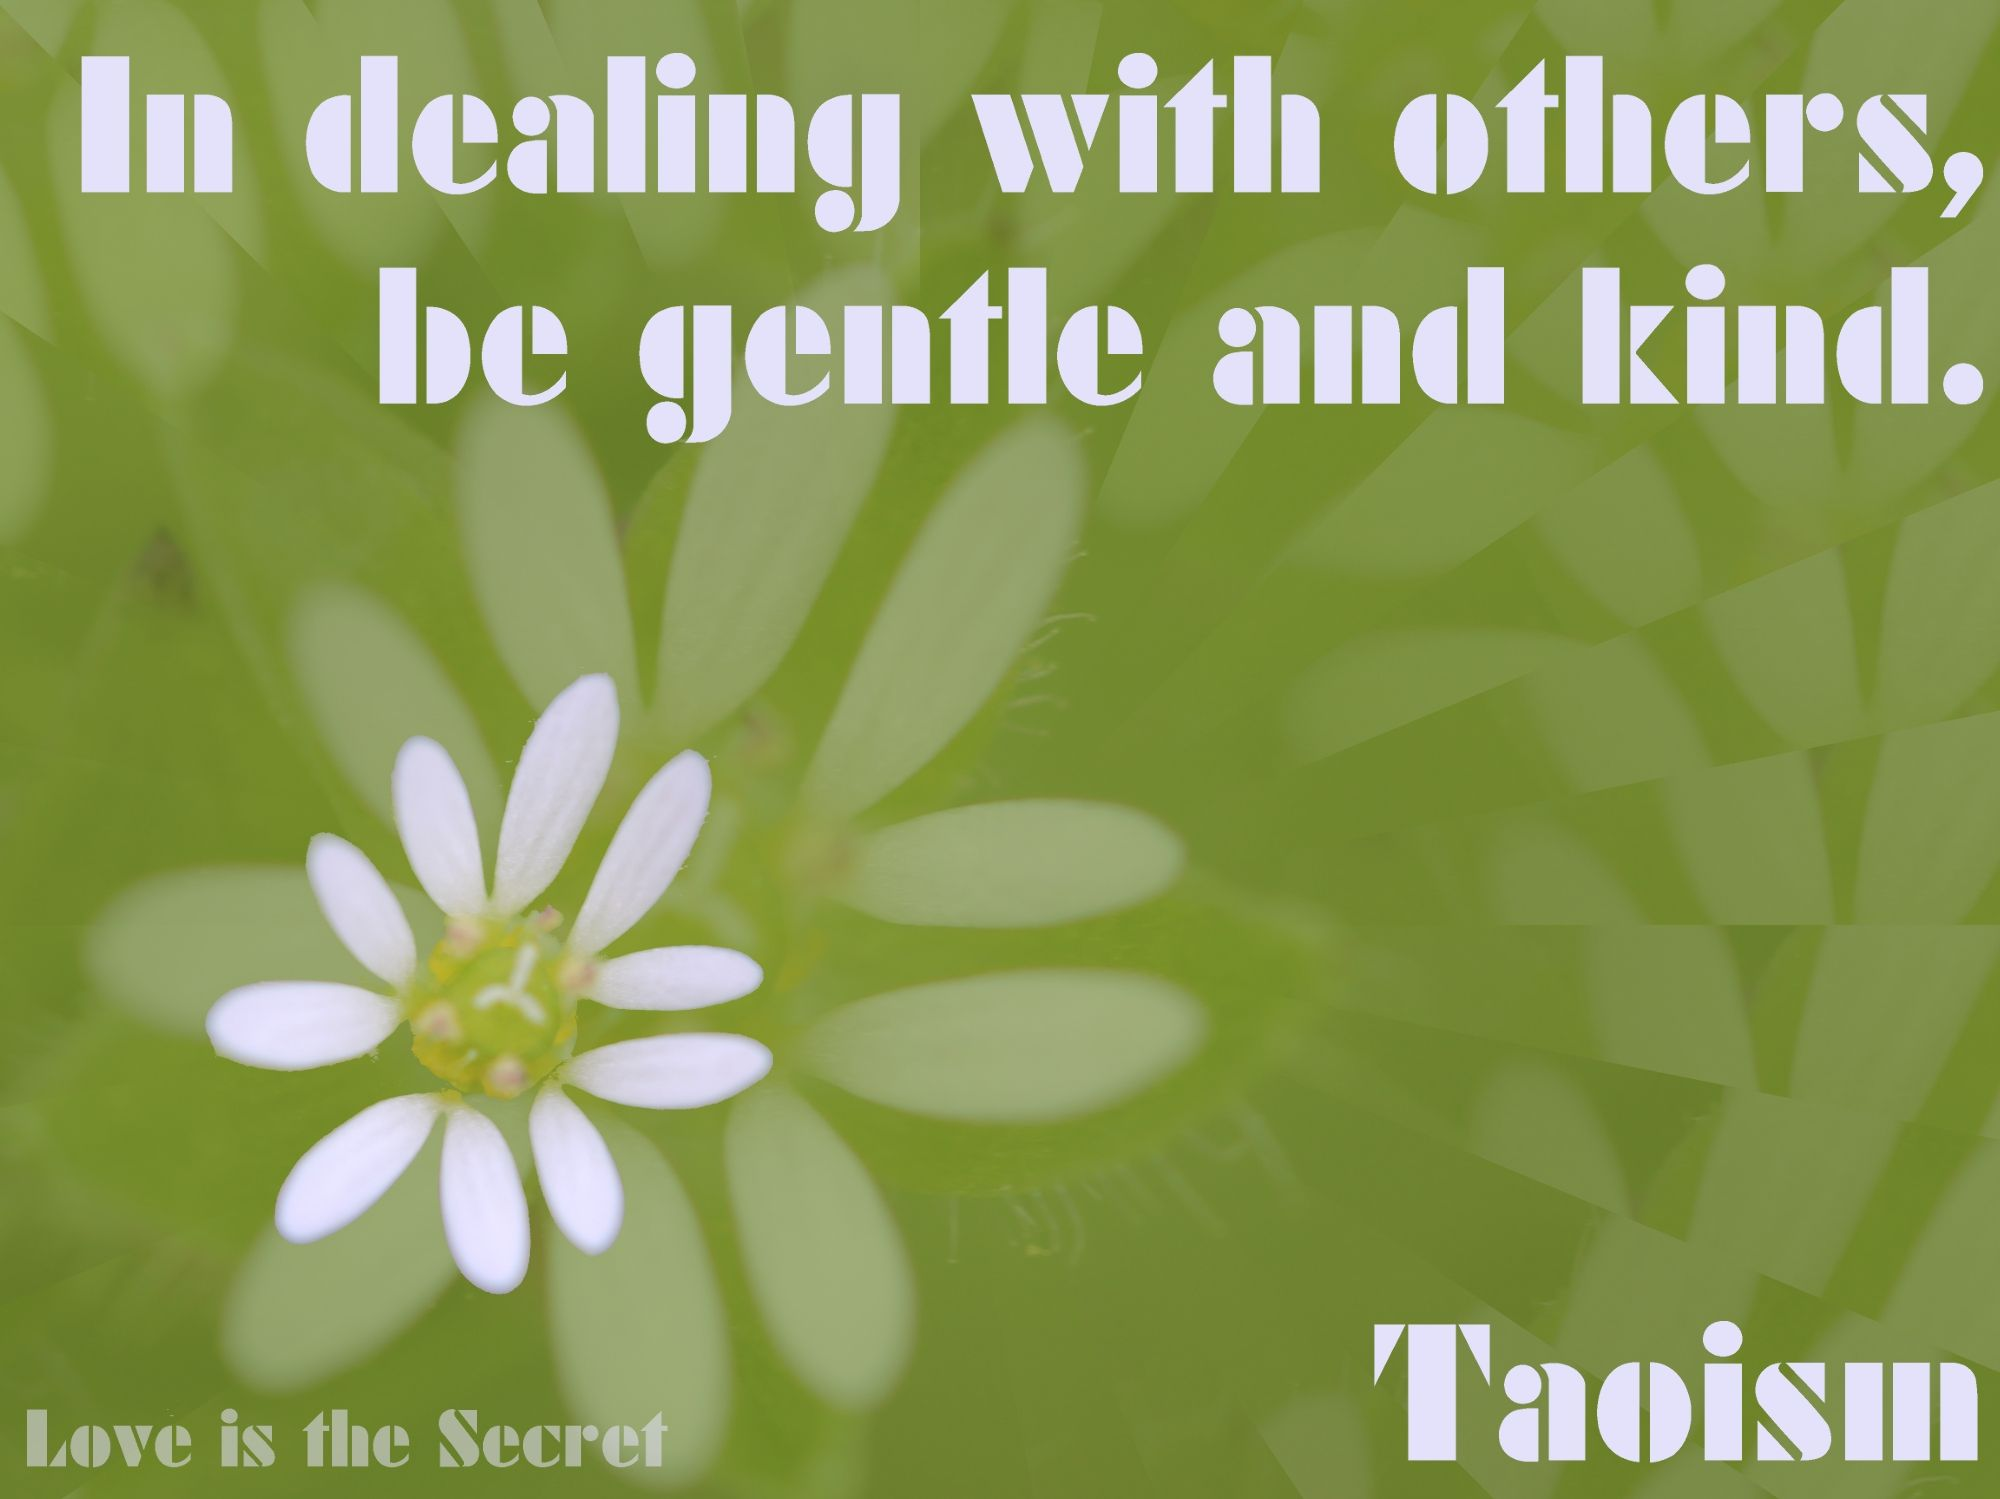 In dealing with others, be gentle and kind. In speech, be true. In ruling, be just. In business, be competent. In action, watch the timing. Taoism Source:http://www.katinkahesselink.net/other/tao-te-ching-quotes.html Photo by: Love is the Secret